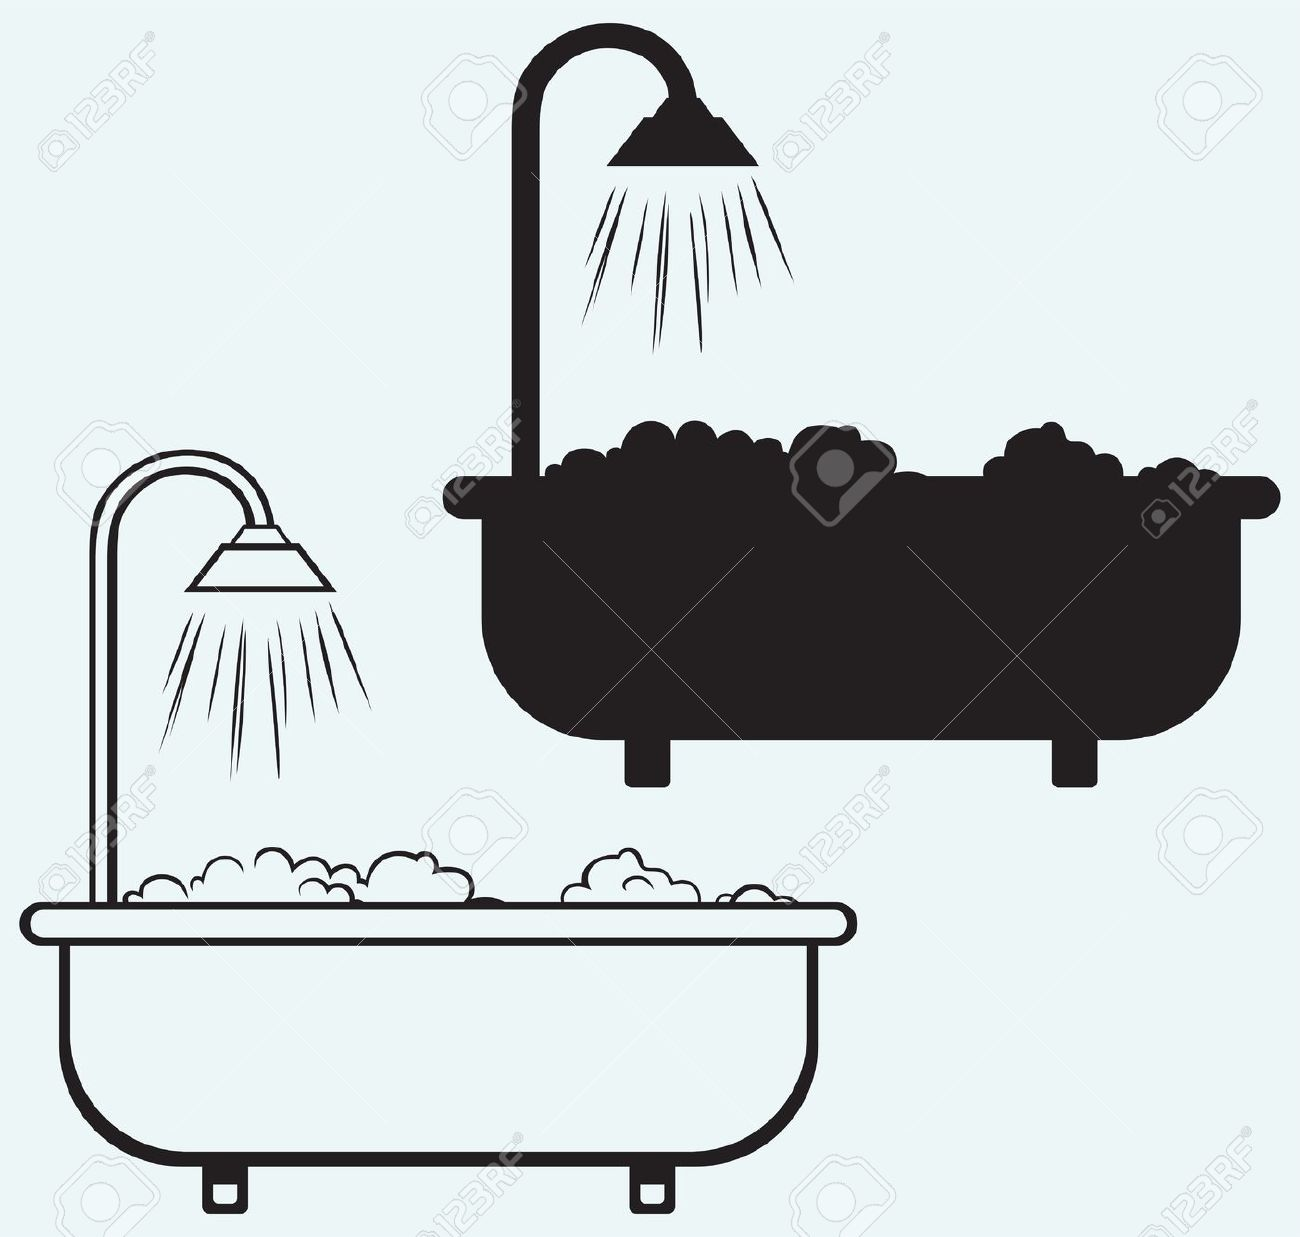 Foam clipground with isolated. Bath clipart illustration